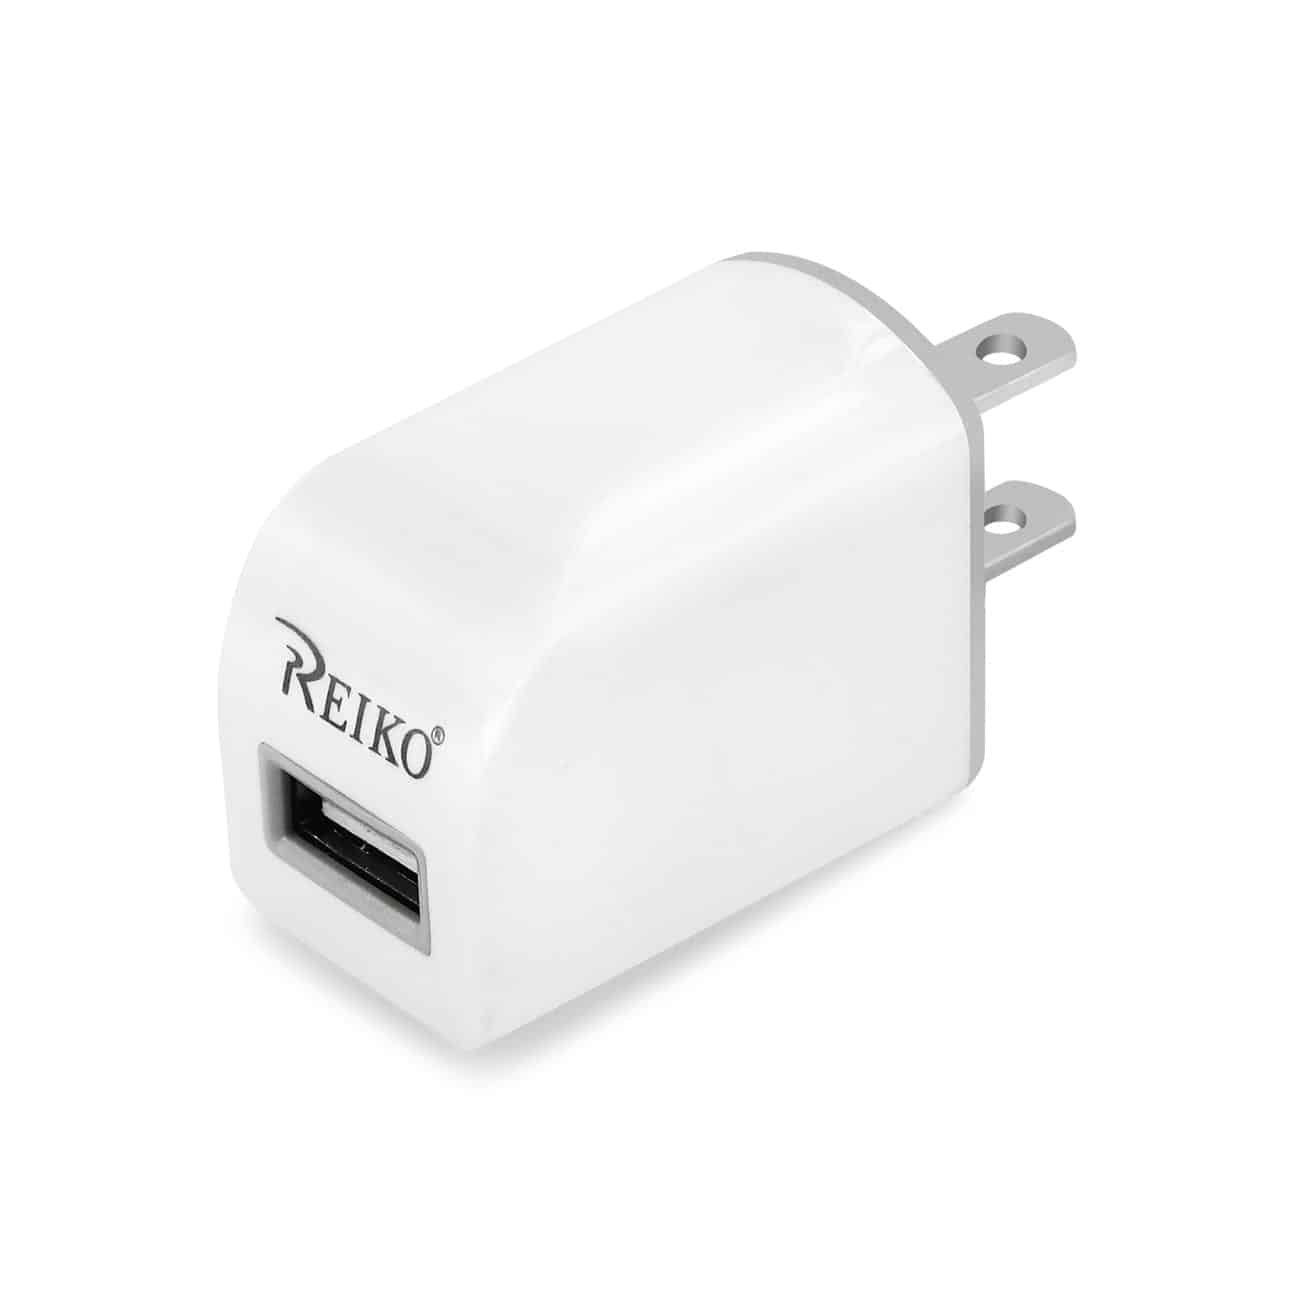 2.1A TYPE C TRAVEL CHARGER WITH DATA CABLE IN WHITE